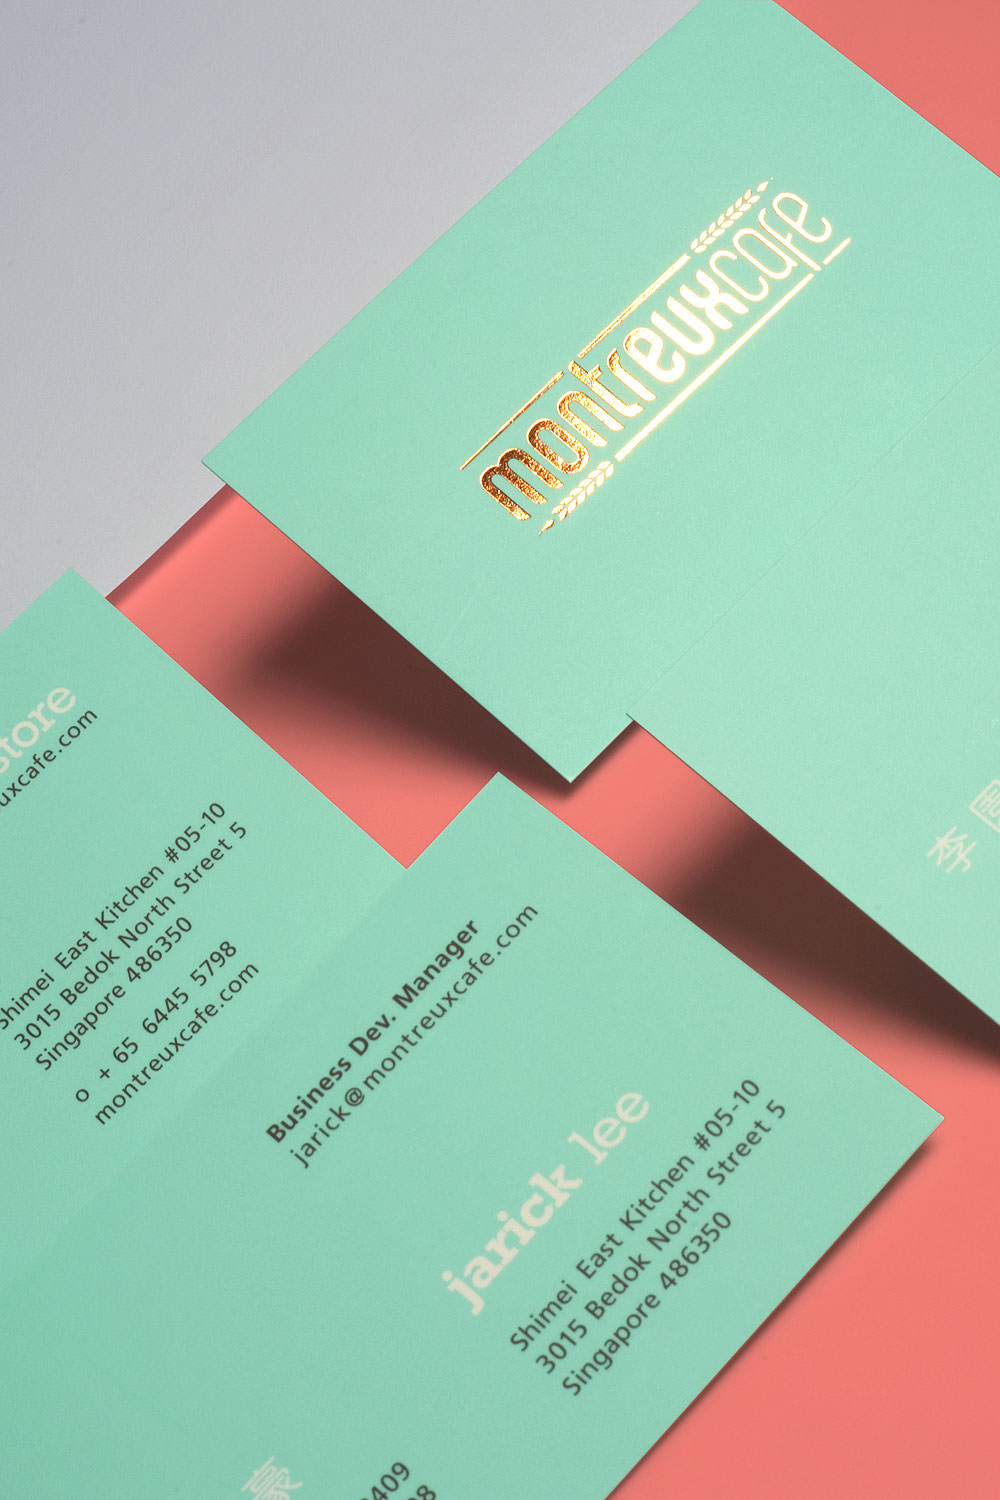 Montreux Café - Business cards.